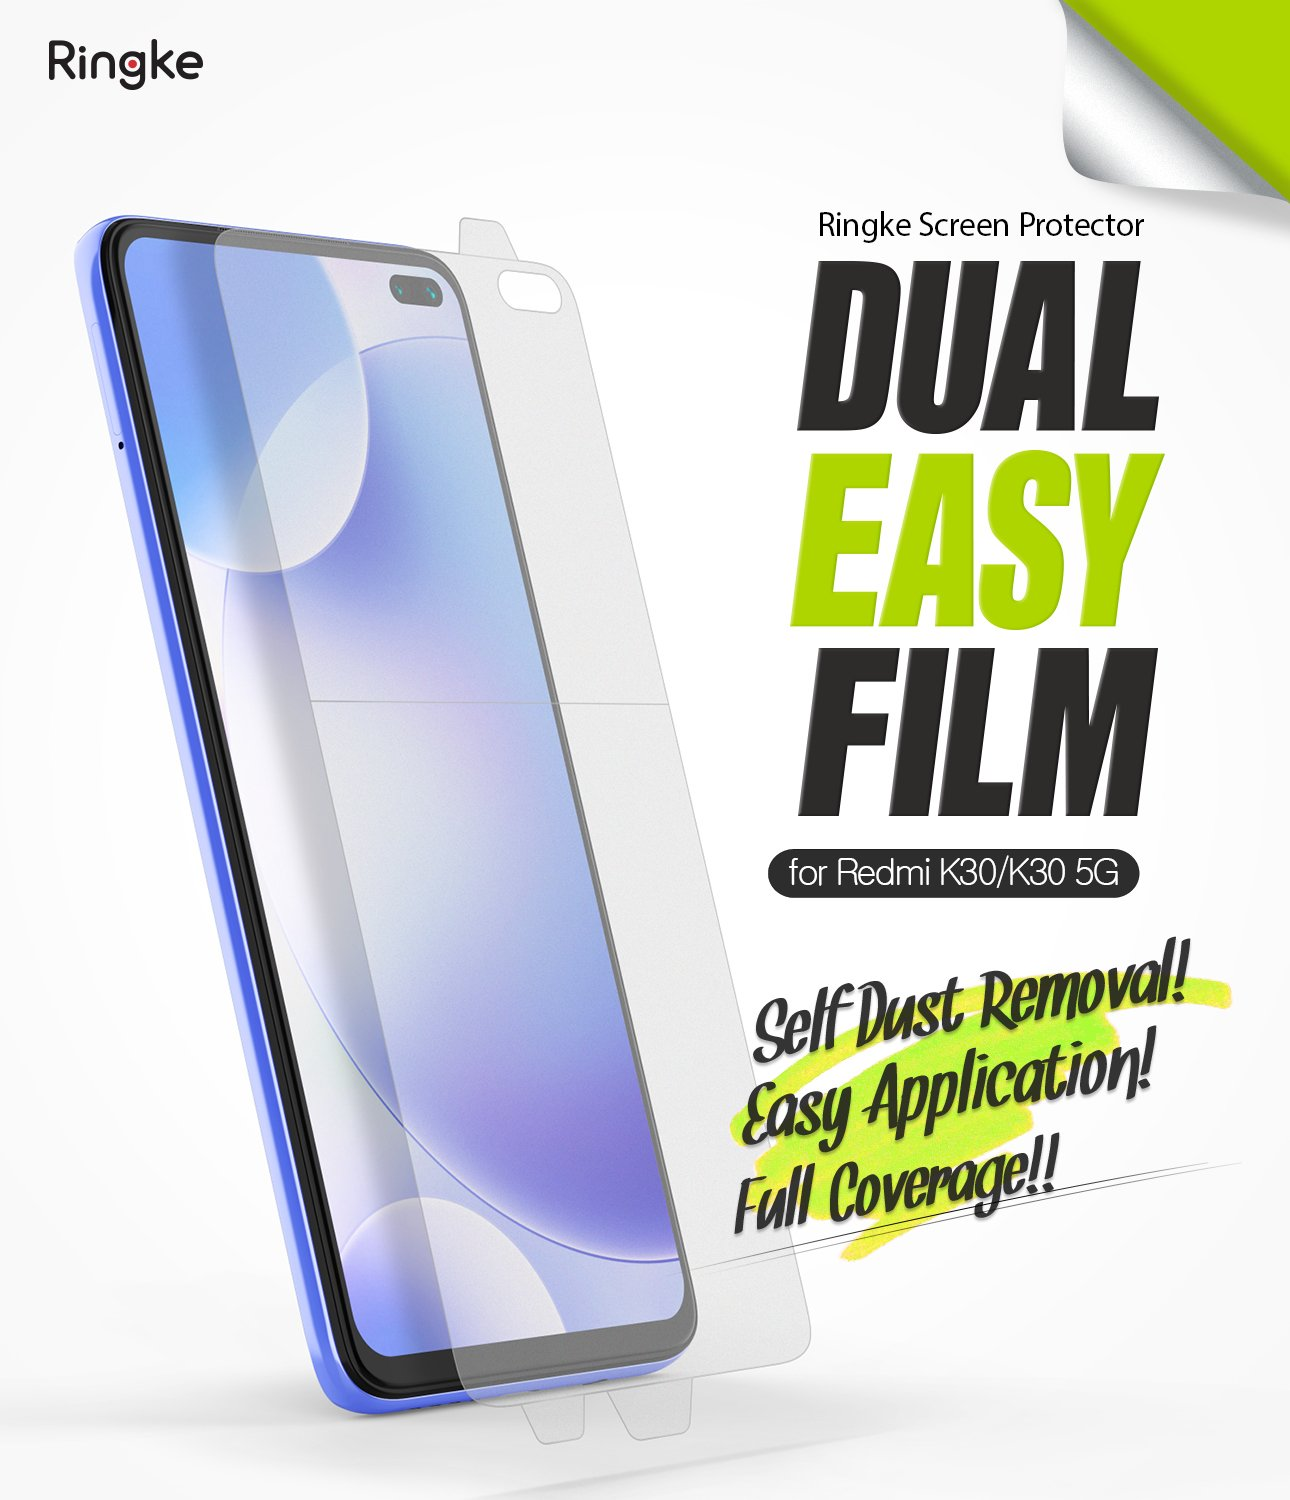 Xiaomi Redmi K30 [Dual Easy Full Cover] Screen Protector [2 Pack]